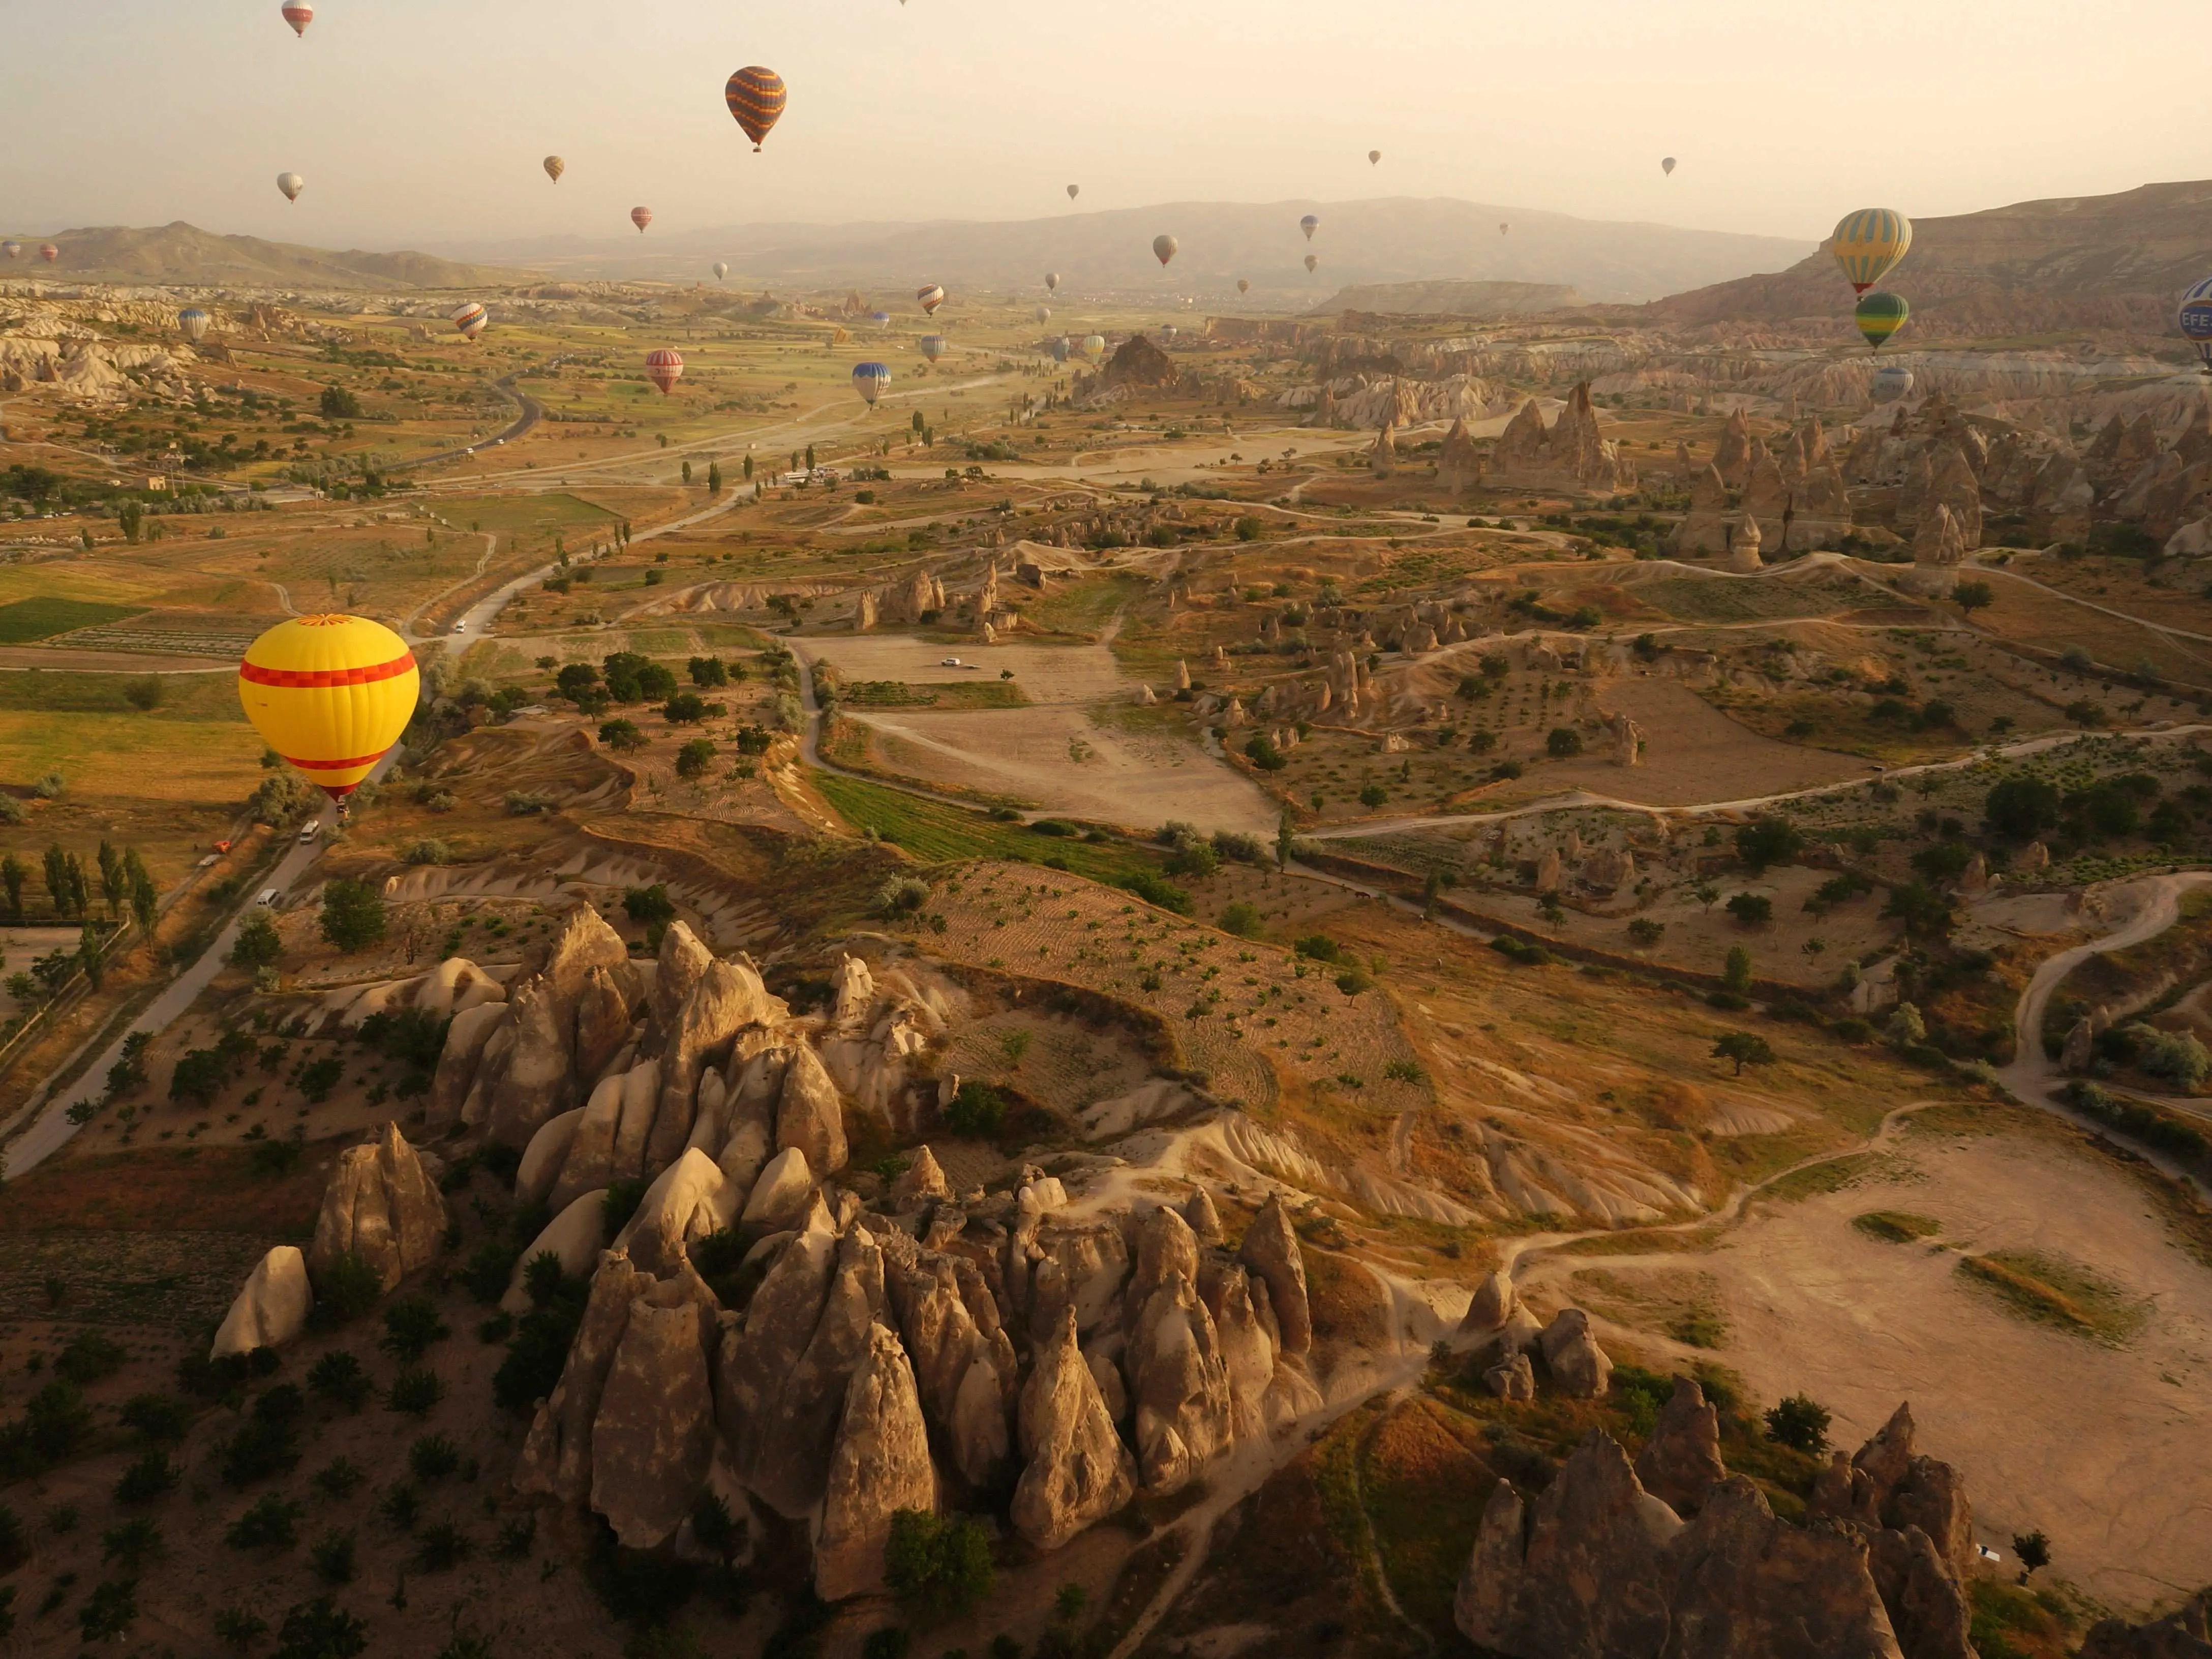 """Göreme National Park and the Rock Sites of Cappadocia is a volcanic landscape created entirely from erosion that eventually formed mountain ridges, valleys, and pinnacles nicknamed """"fairy chimneys"""" across Cappadocia, Turkey."""